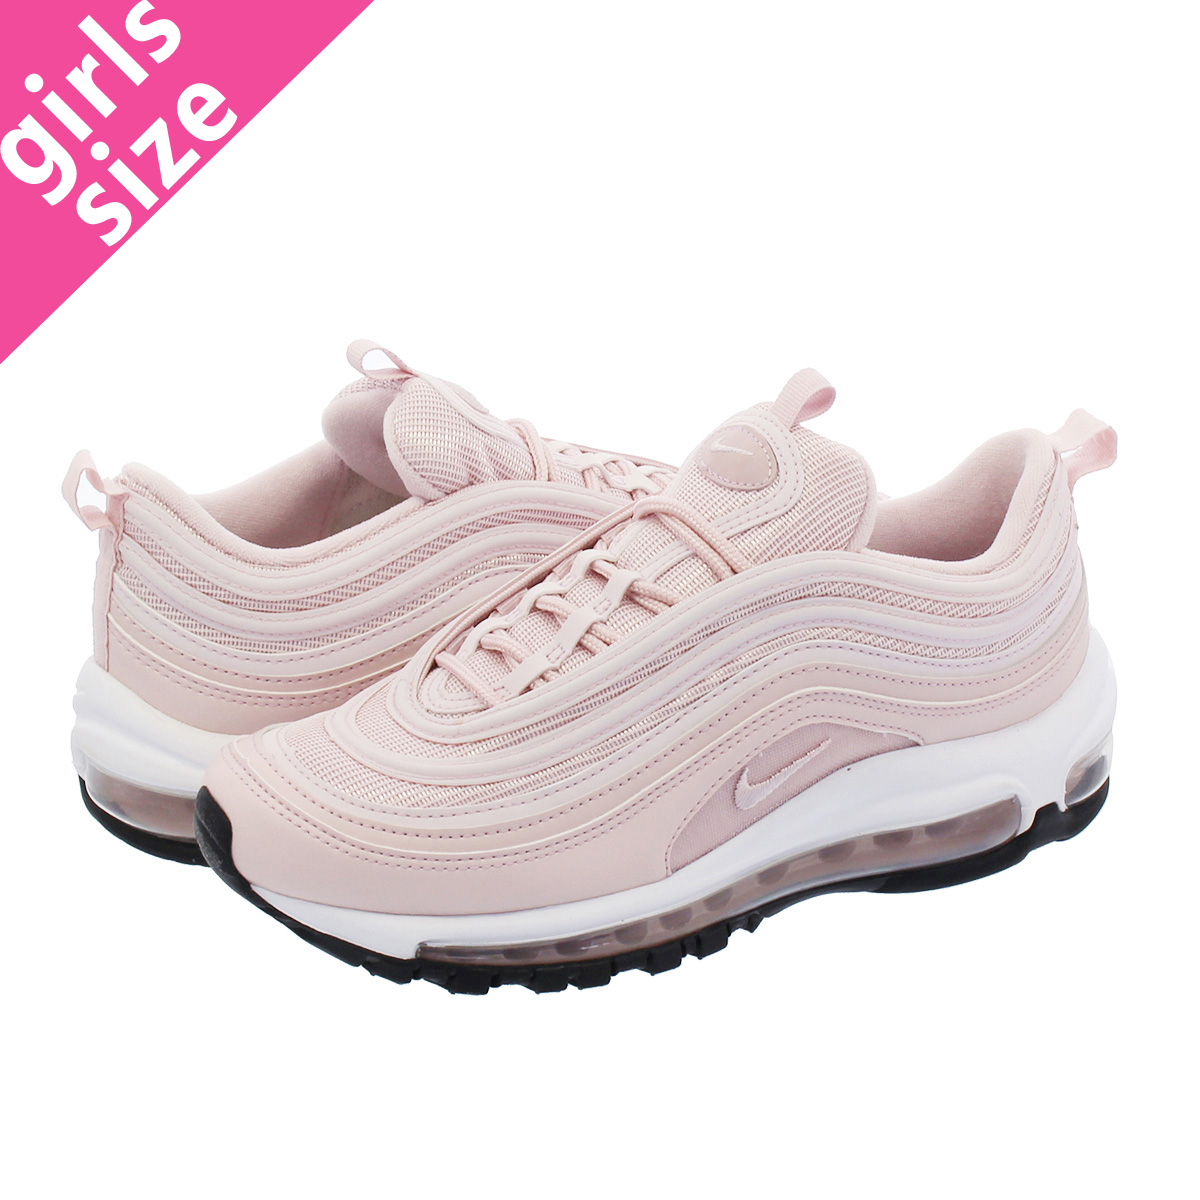 online store 8ba95 b362d NIKE WMNS AIR MAX 97 Nike women Air Max 97 BARELY ROSE/WHITE/BLACK  921733-600-l